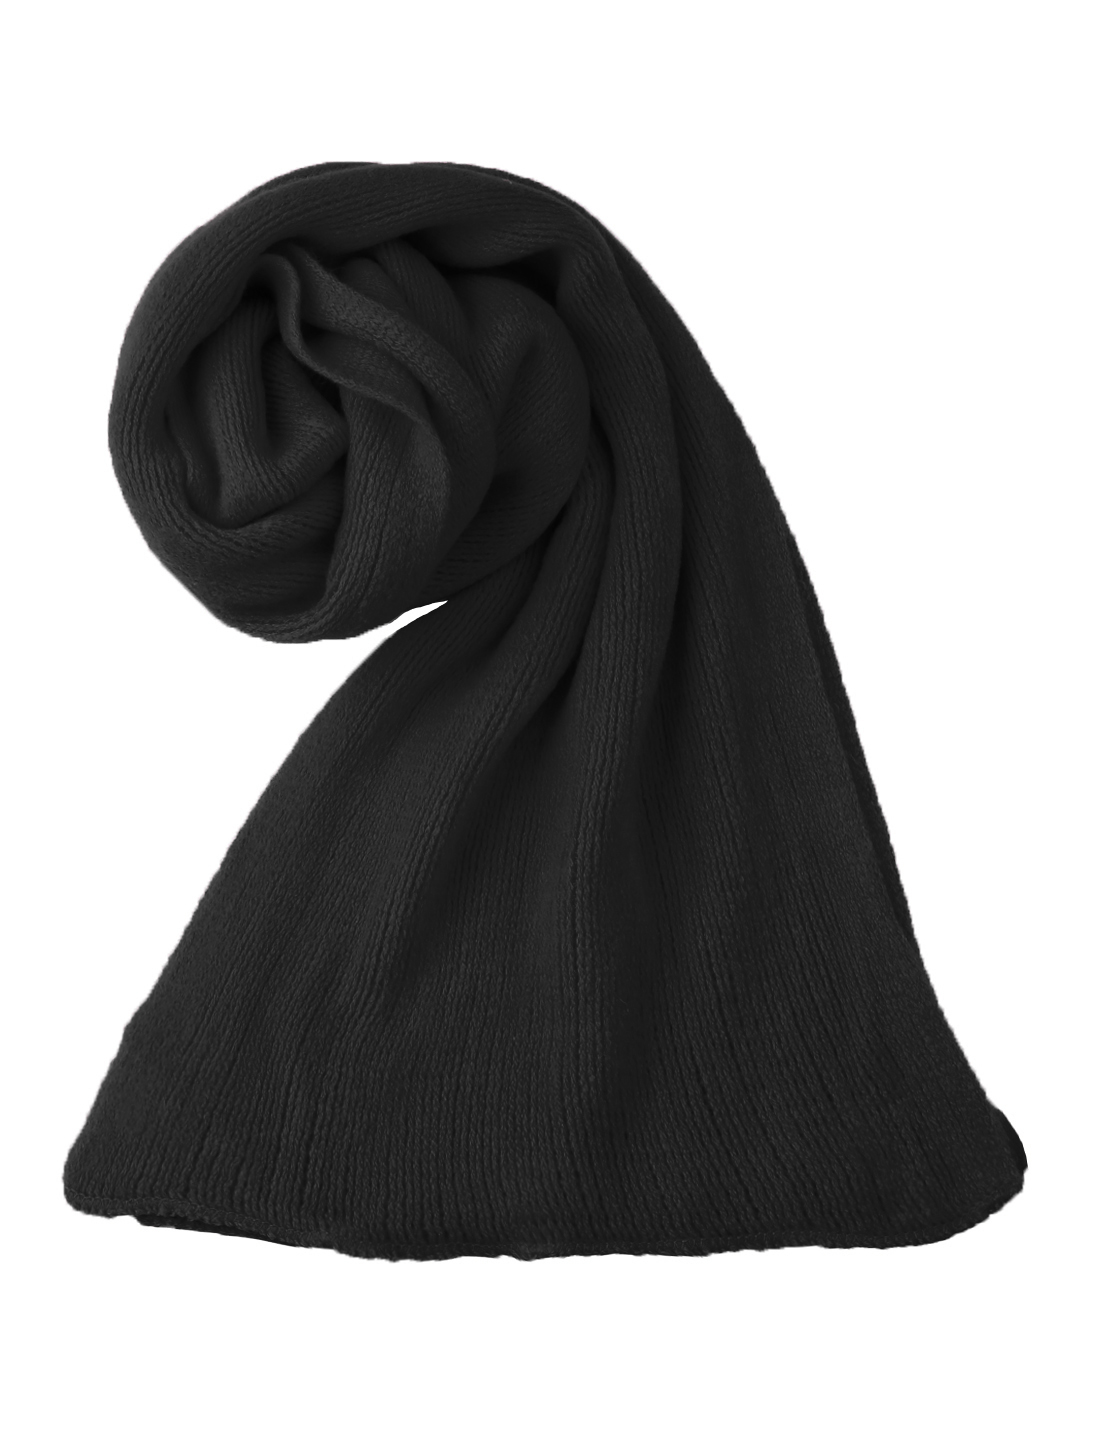 Unisex Black Rectangle Shape Solid Color Winter Warm Scarf Scarves